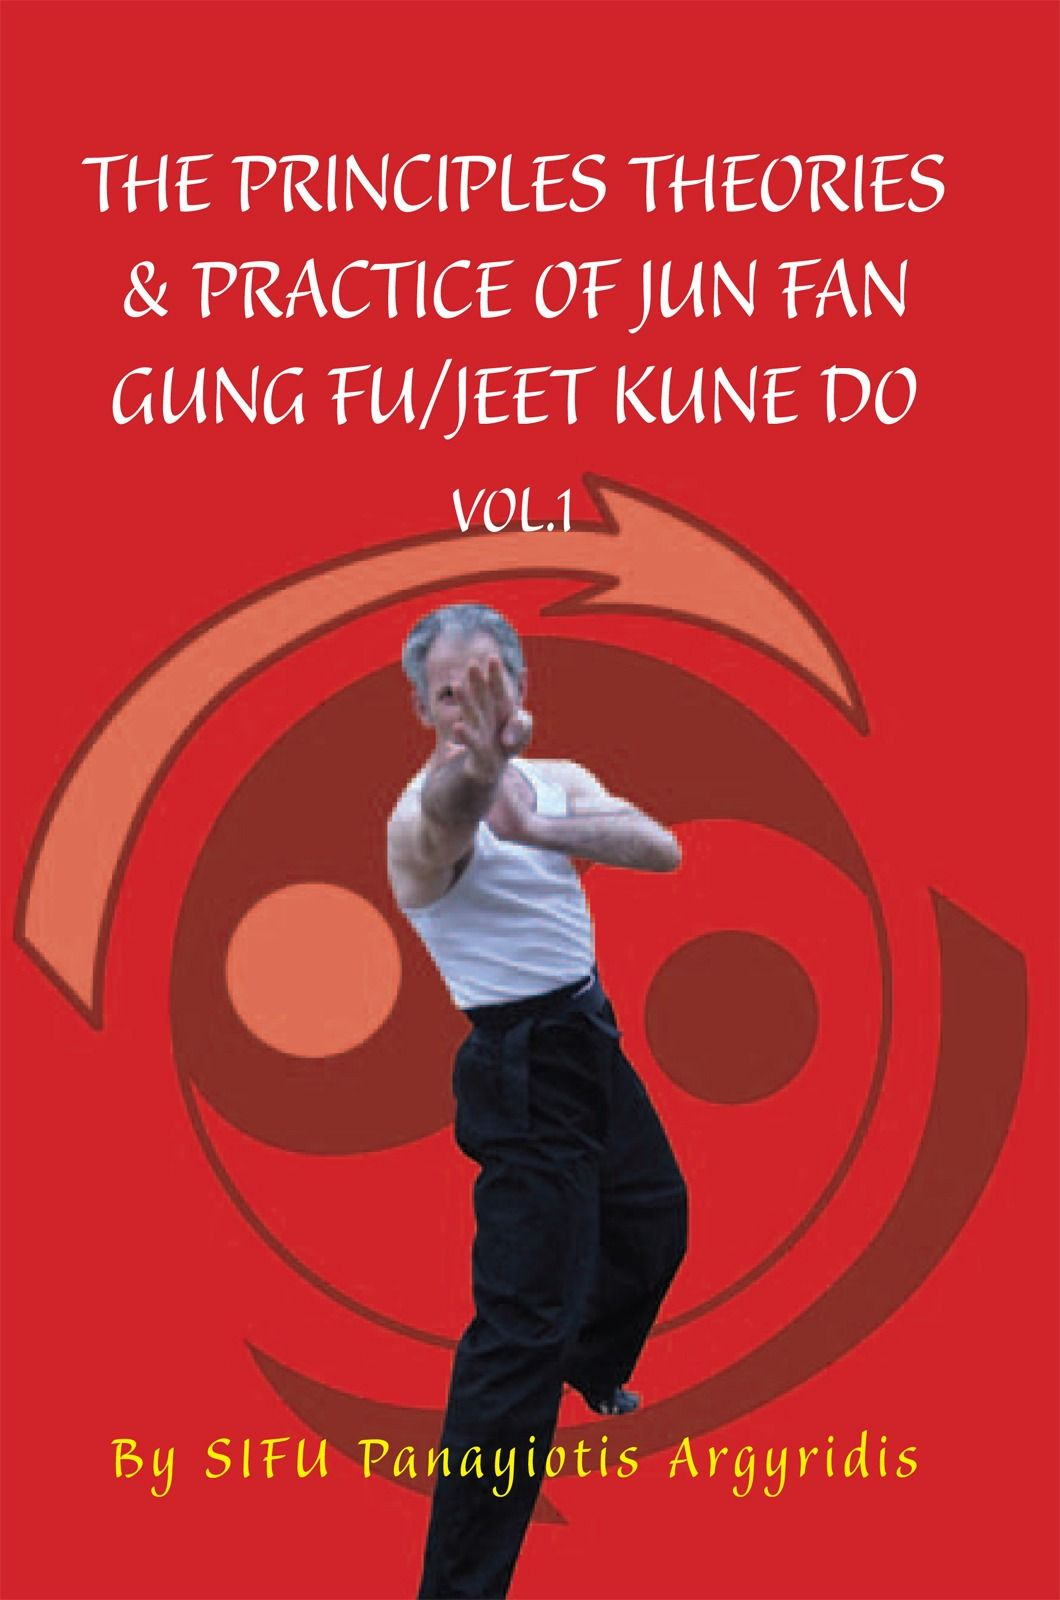 The Principles Theories & Practice of Jun Fan Gung Fu/Jeet Kune Do vol.1